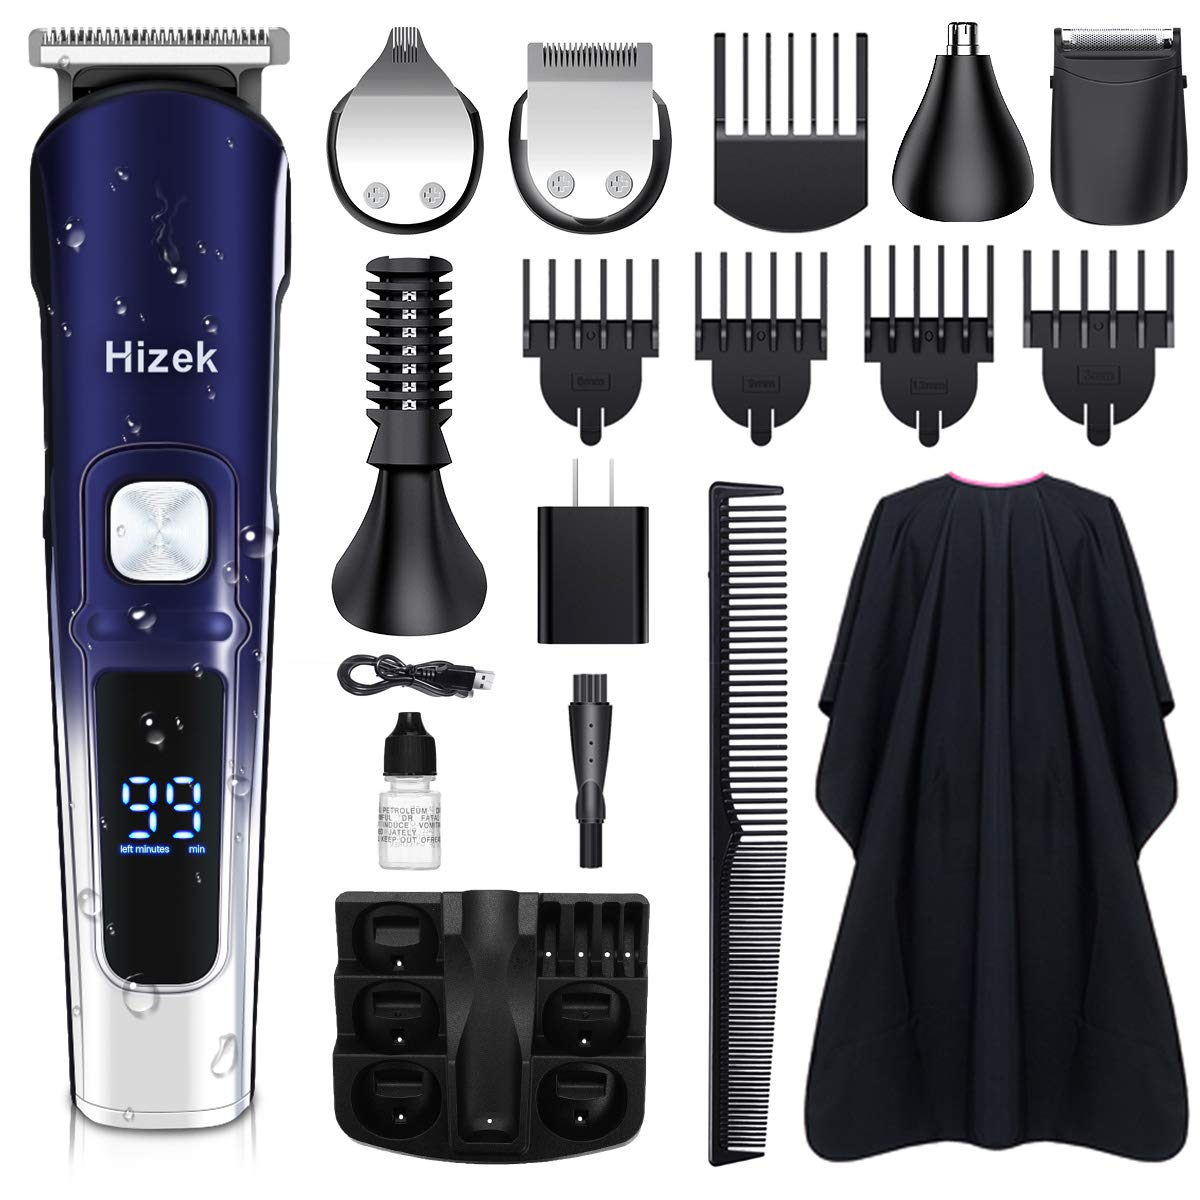 Beard Trimmer, Hizek Hair Clippers for Men Cordless Hair Trimmer Waterproof Trimmer Grooming Kit with 2 Adjustable Speed, Hairdressing Cape, LCD Display, Stand Base, Body Groomer for Beard Nose Hair